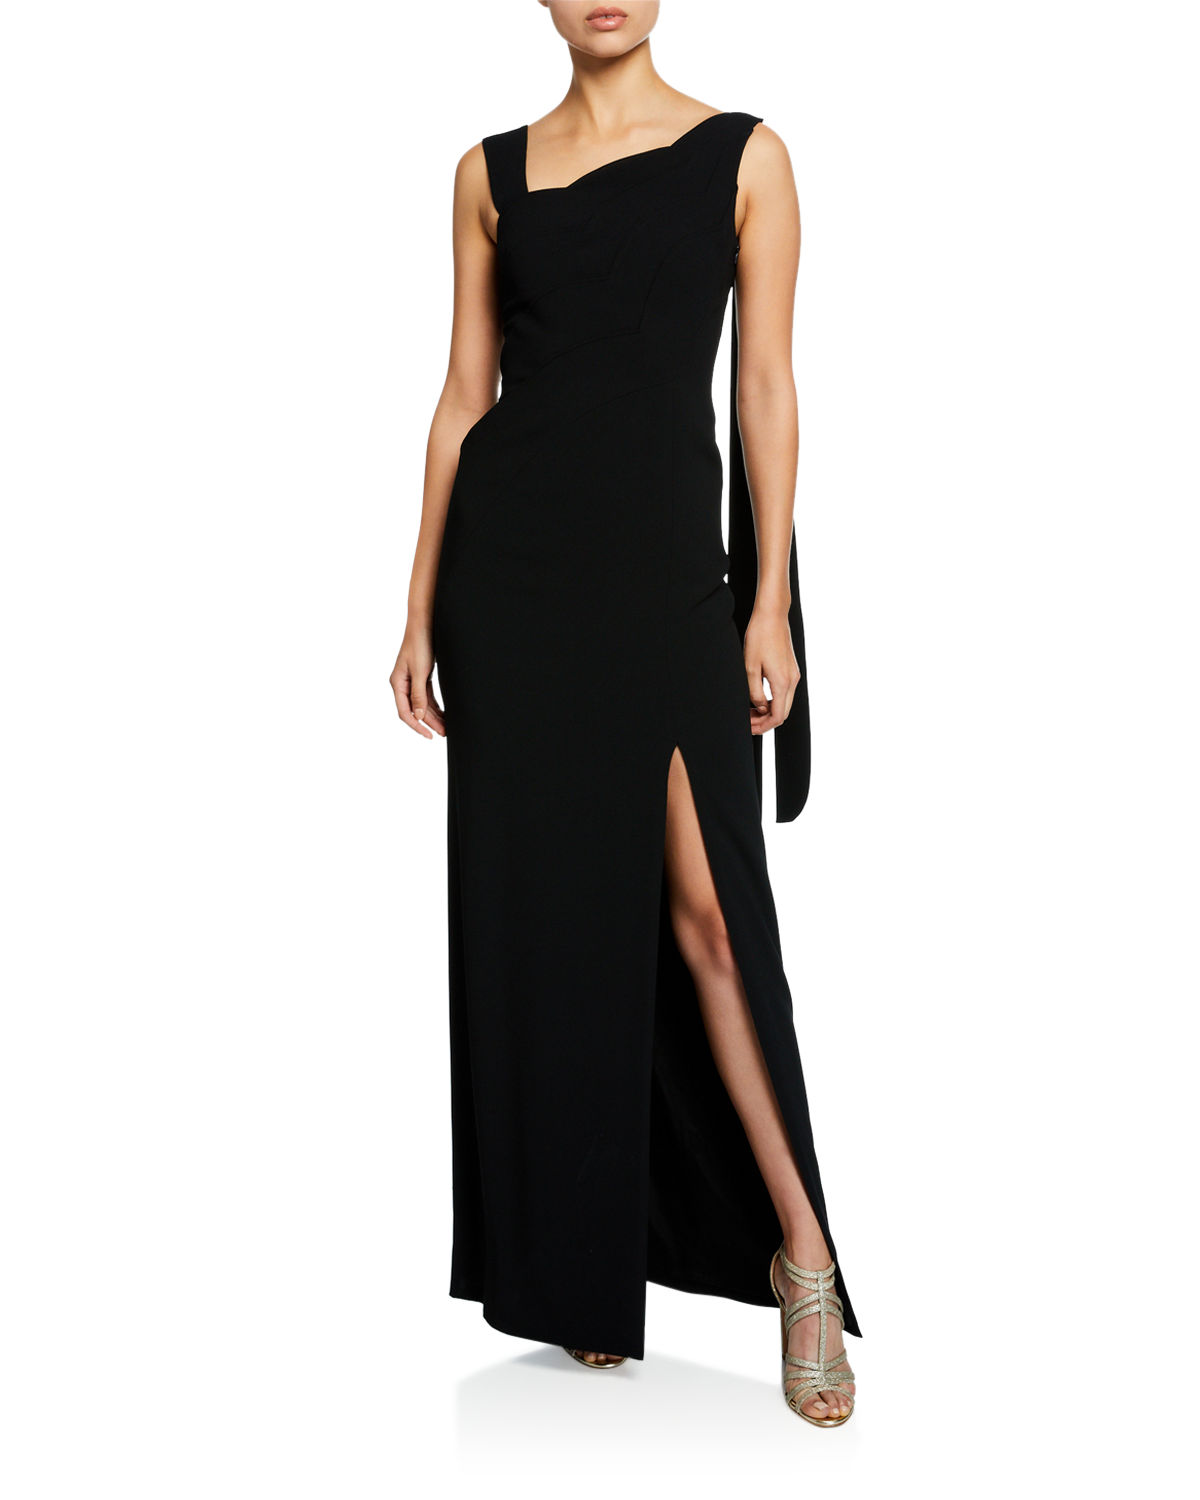 2237ecf930c0e Escada One-Shoulder Scalloped-Front High-Slit Gown In Black